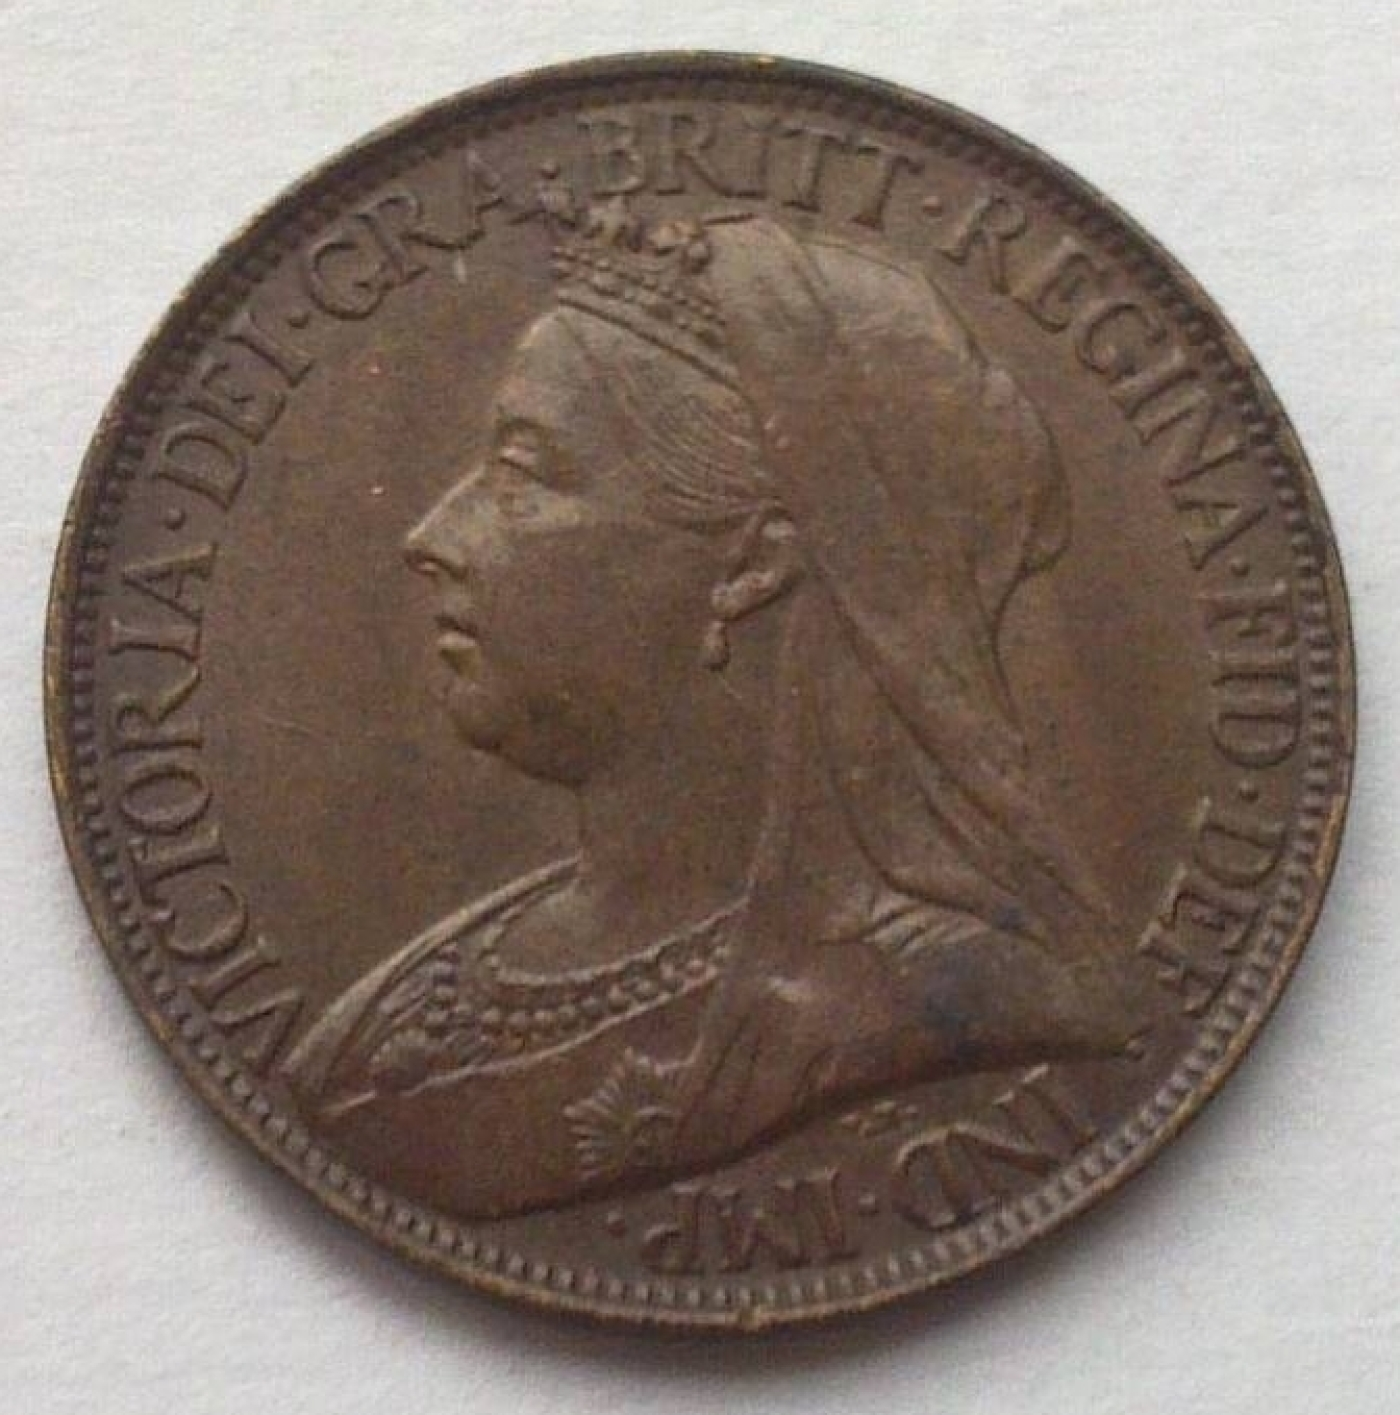 Farthing 1897, Victoria (1837-1901) - Great Britain - Coin